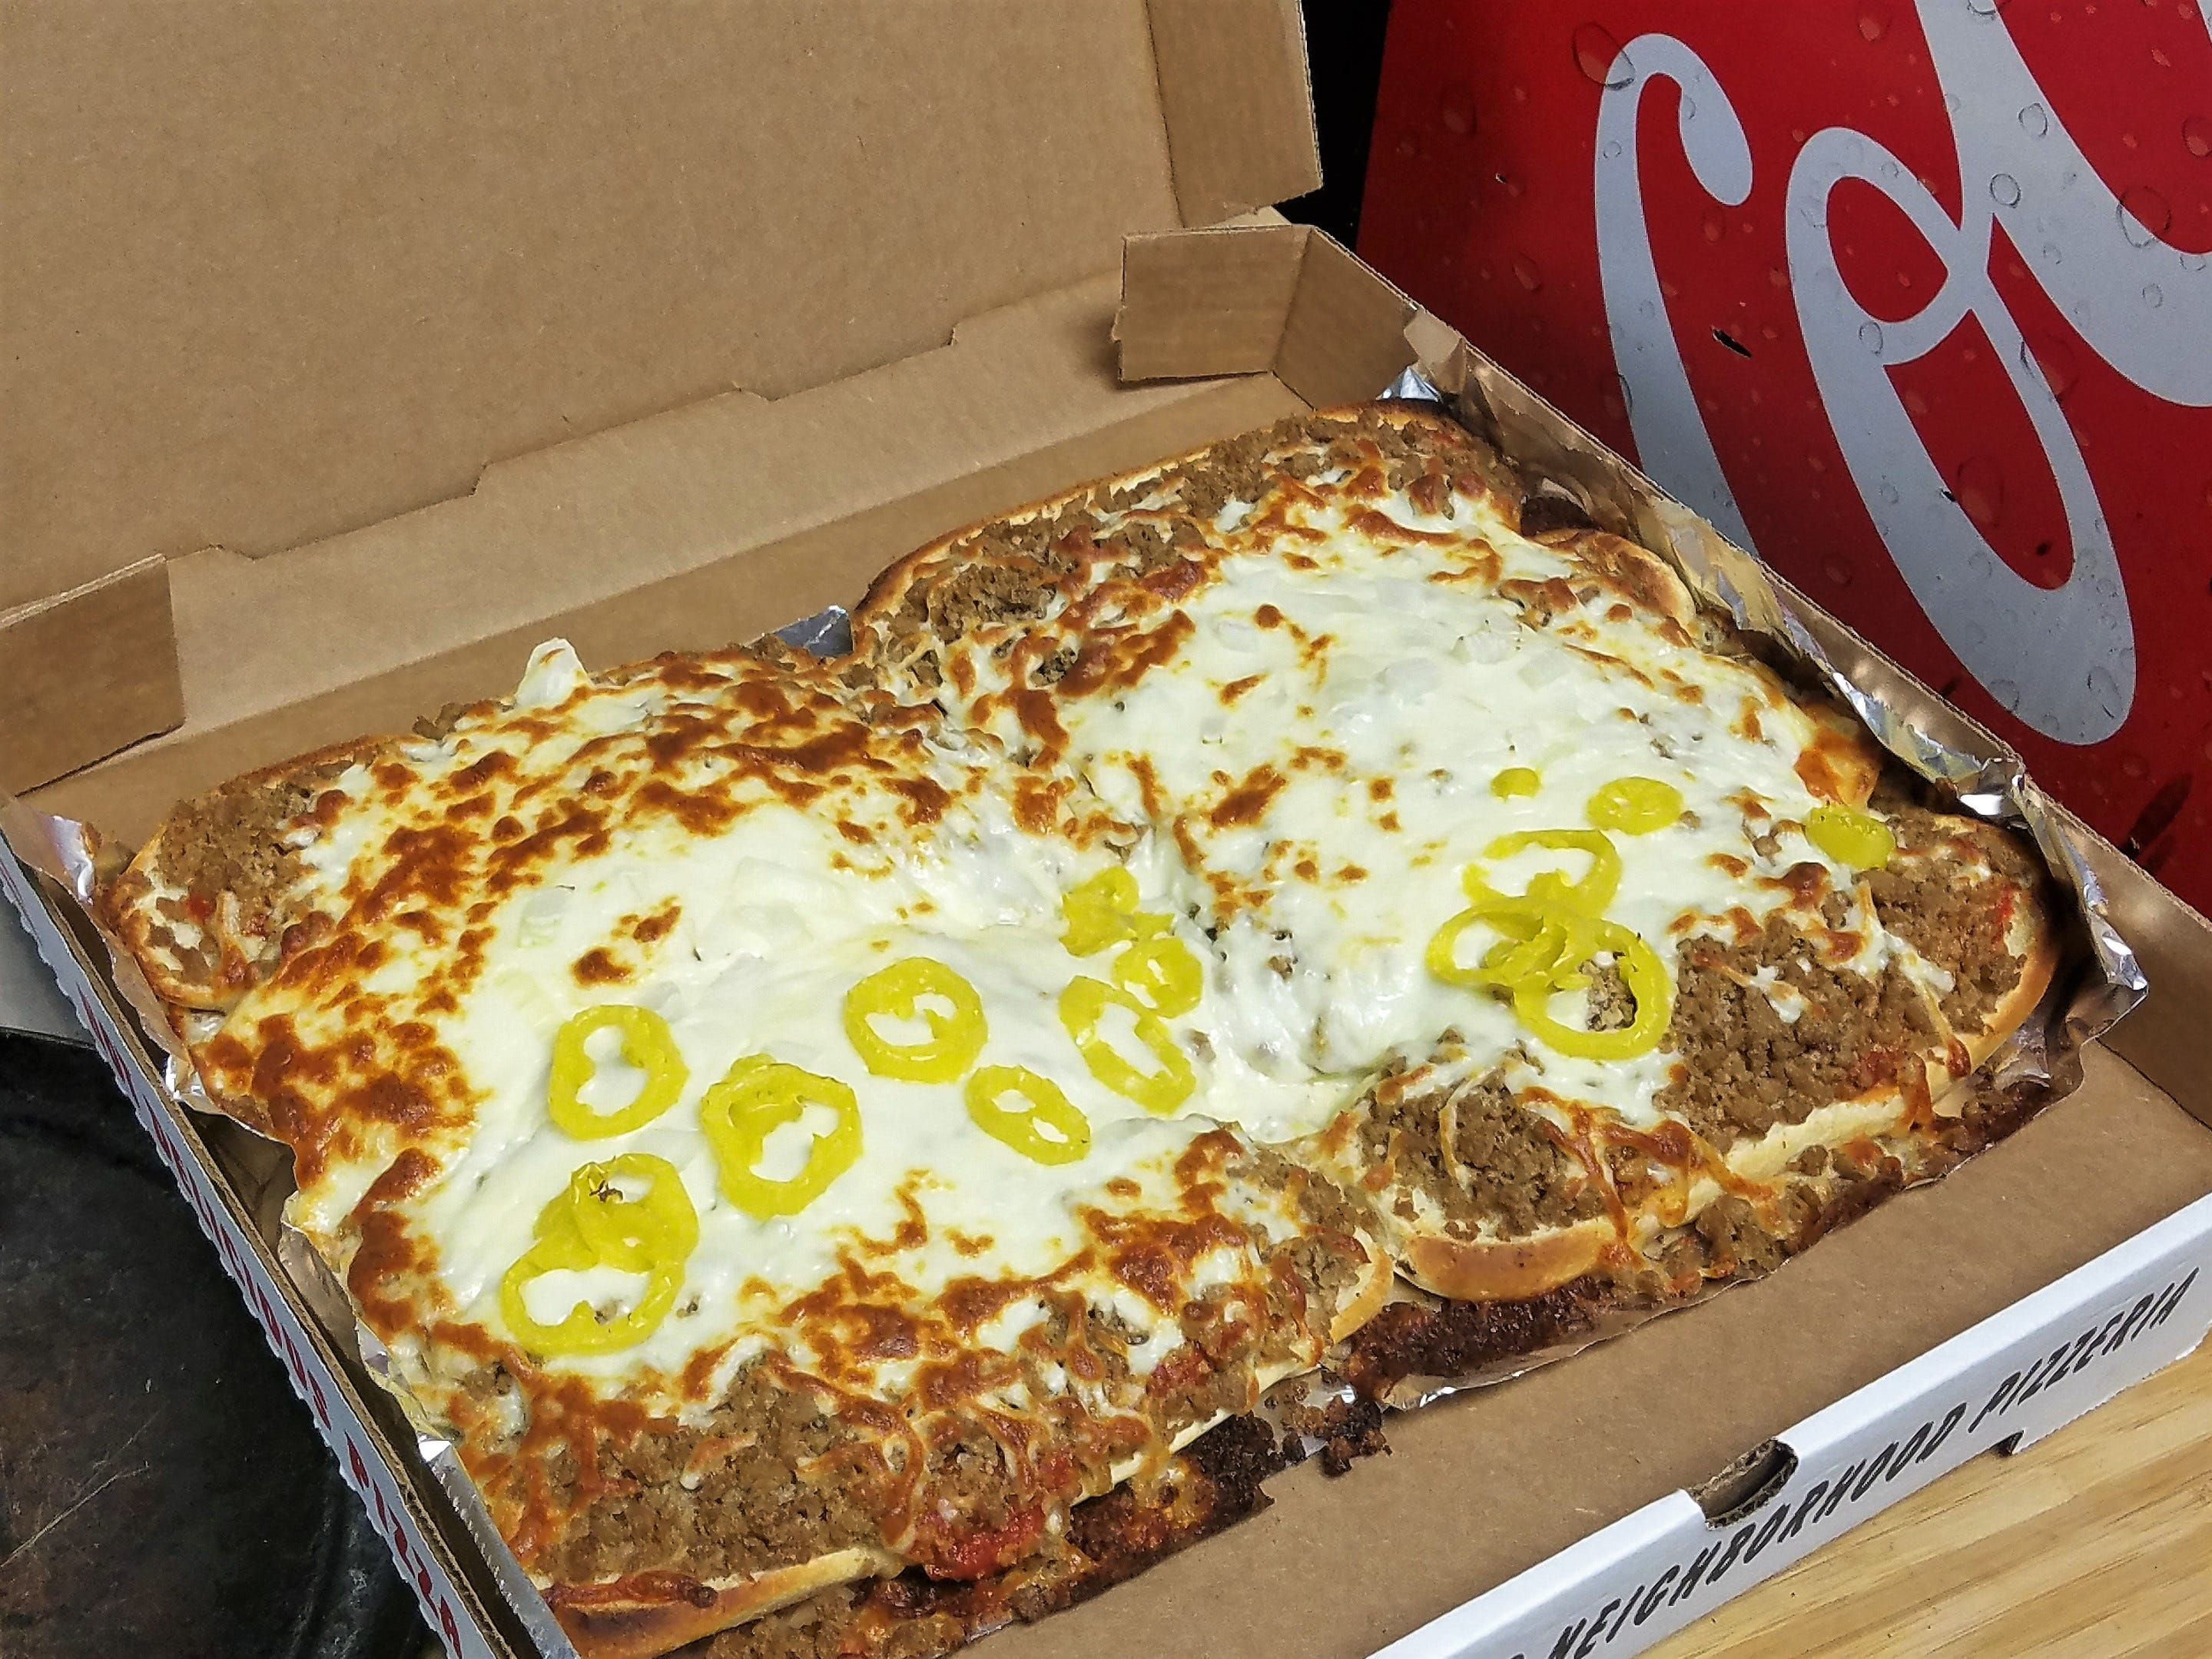 This is how Lobo Lounge bakes their 4 stromboli for $20 special.